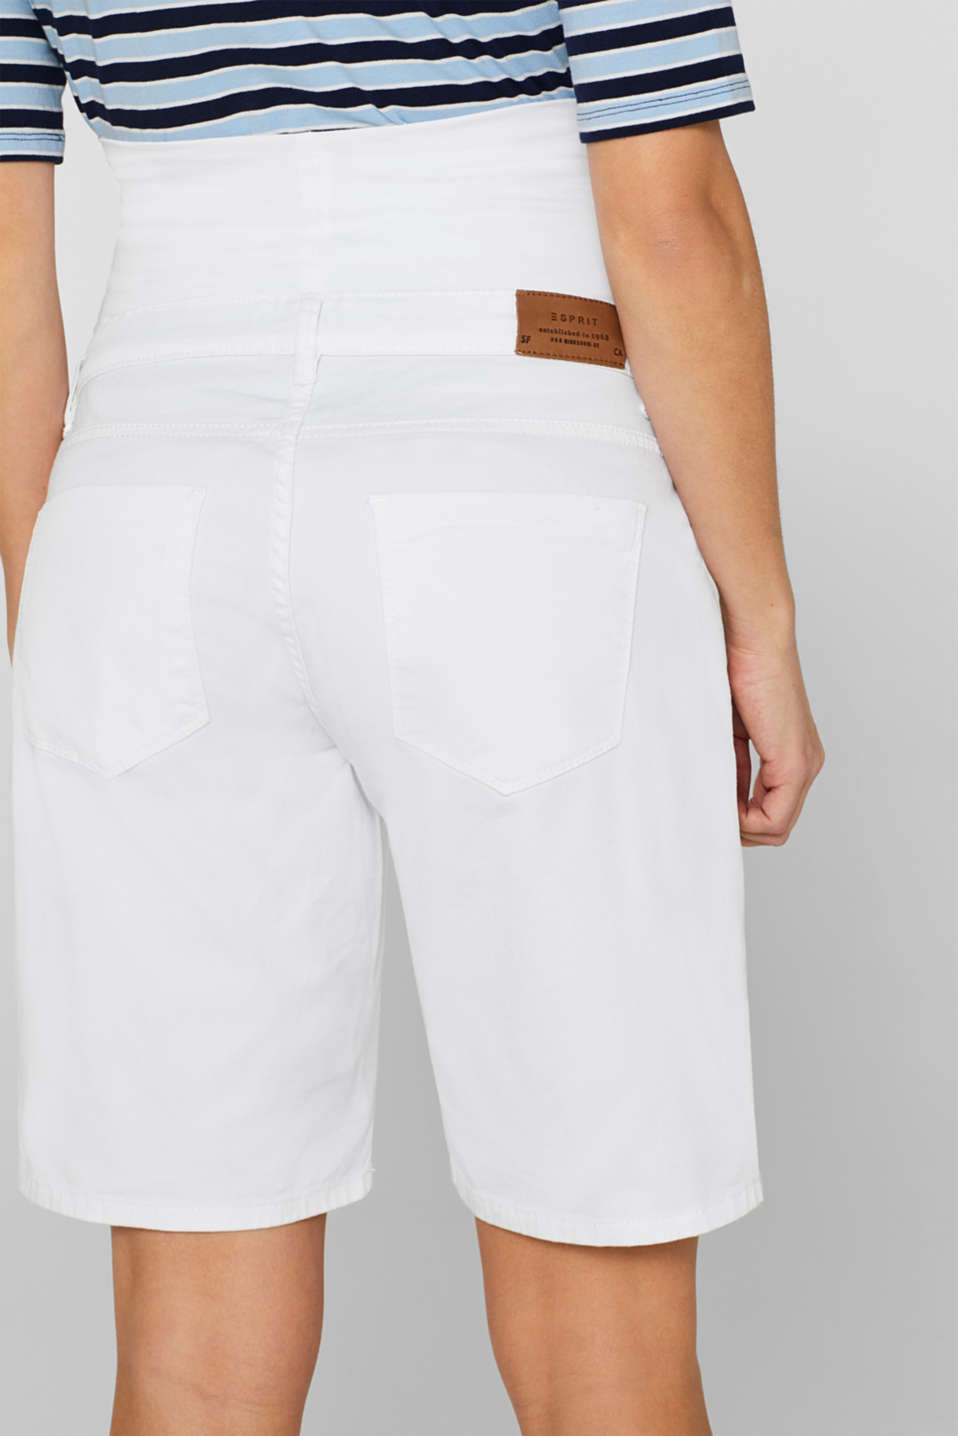 Chino shorts with an under-bump waistband, LCWHITE, detail image number 5